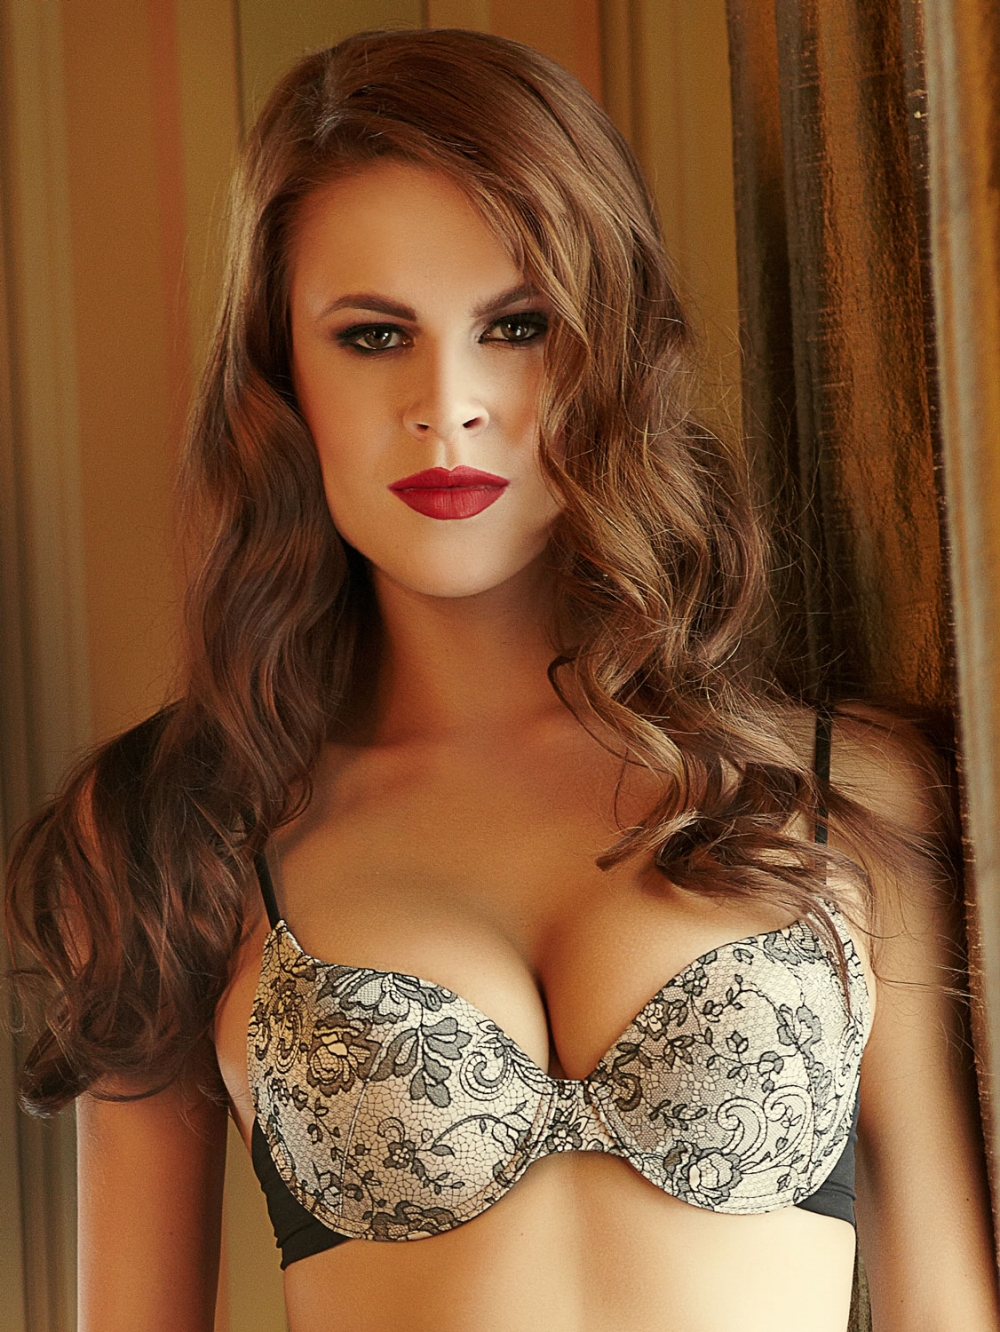 Fashion Life And Trend: Bra Types